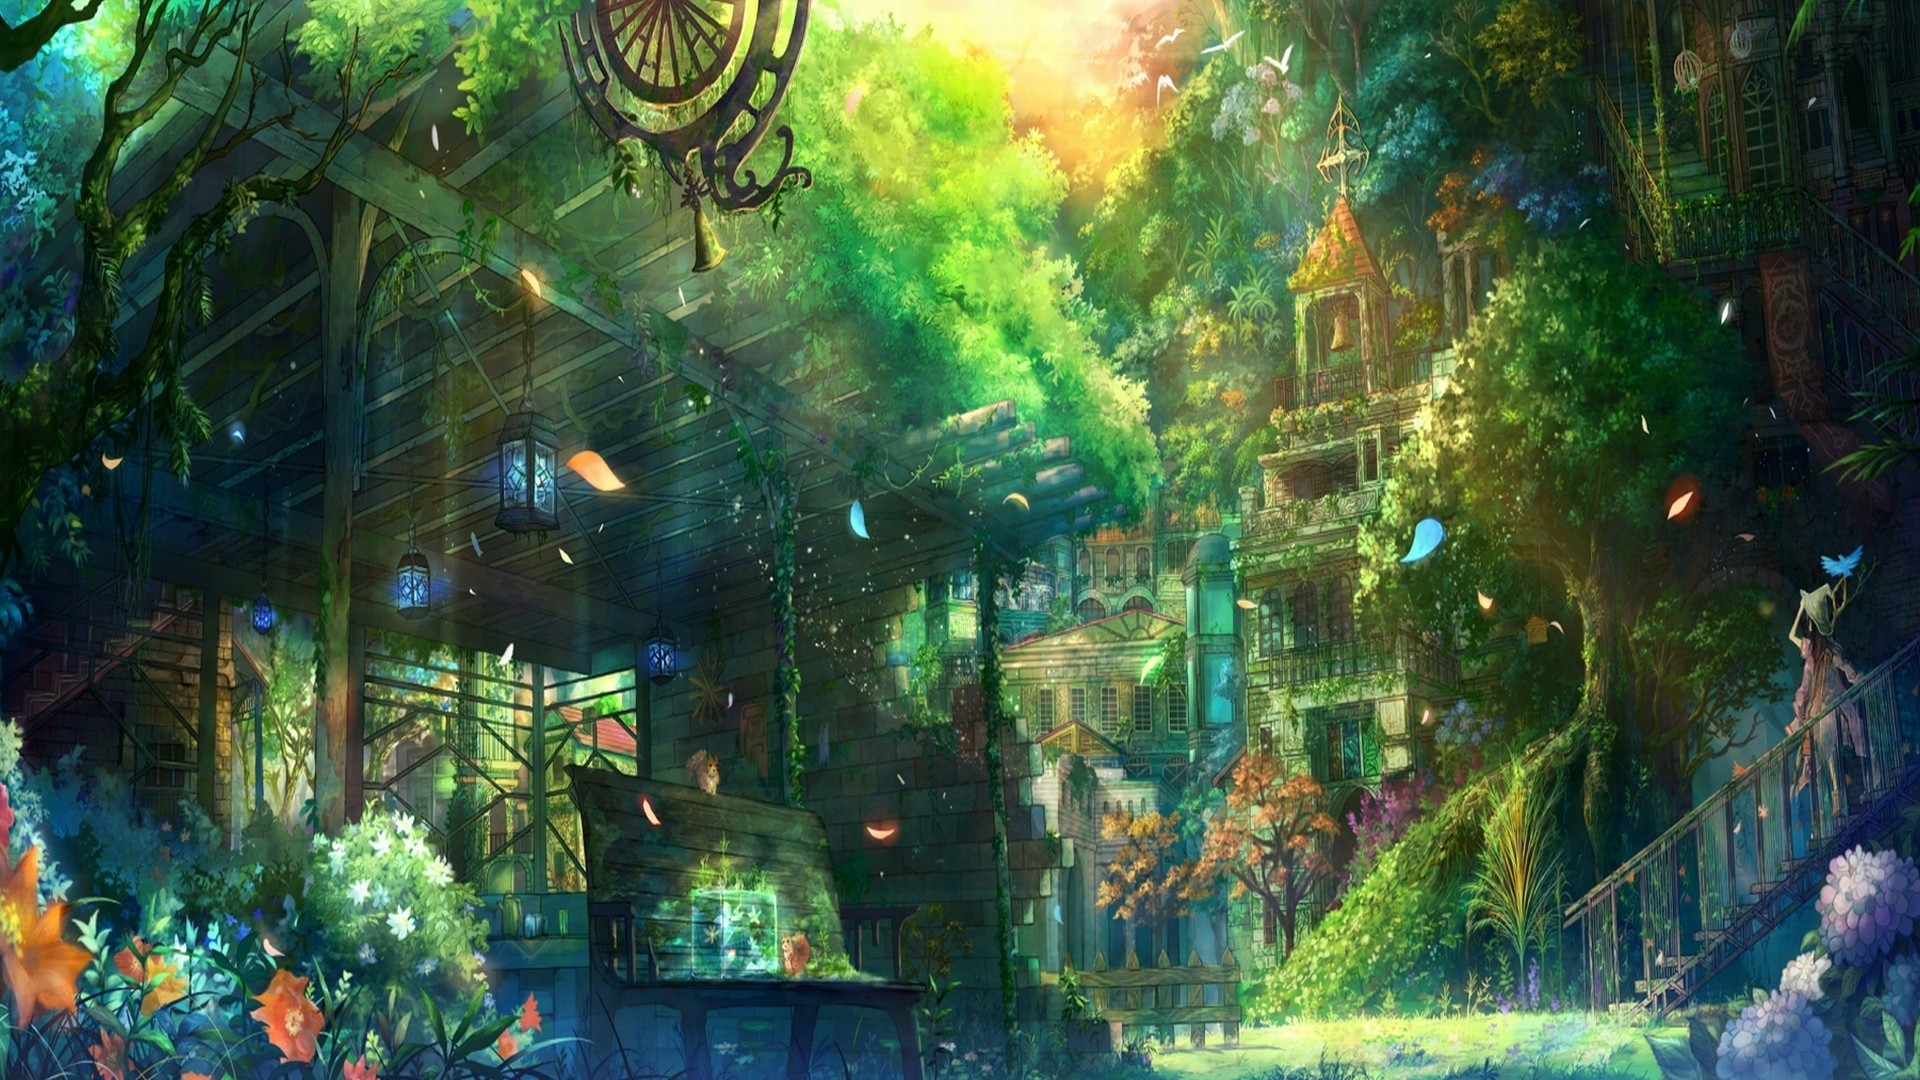 Anime City Scenery Wallpapers High Definition with High Definition Wallpaper  px 1.44 MB